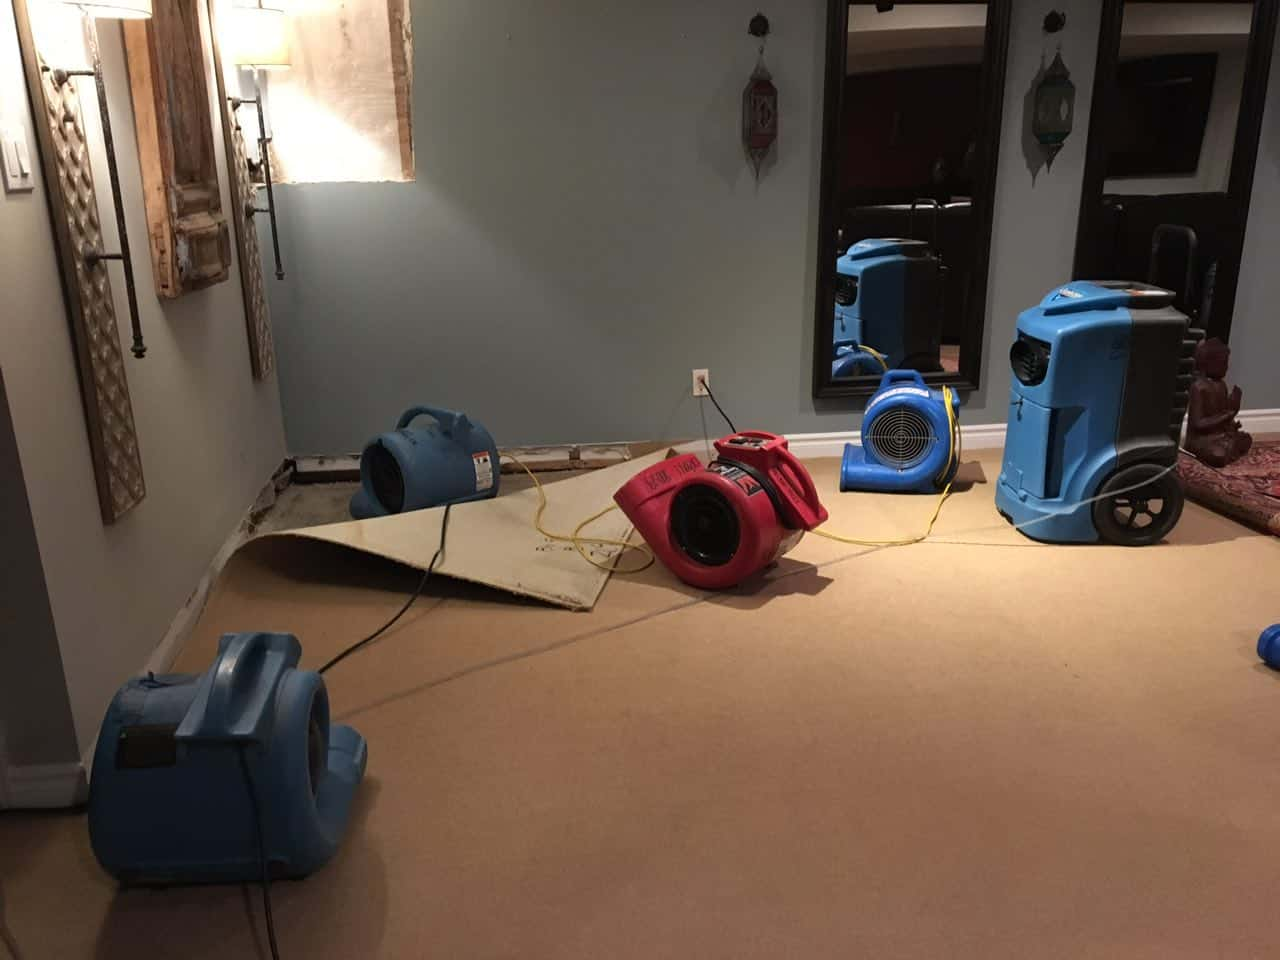 24/7 water damage restoration services